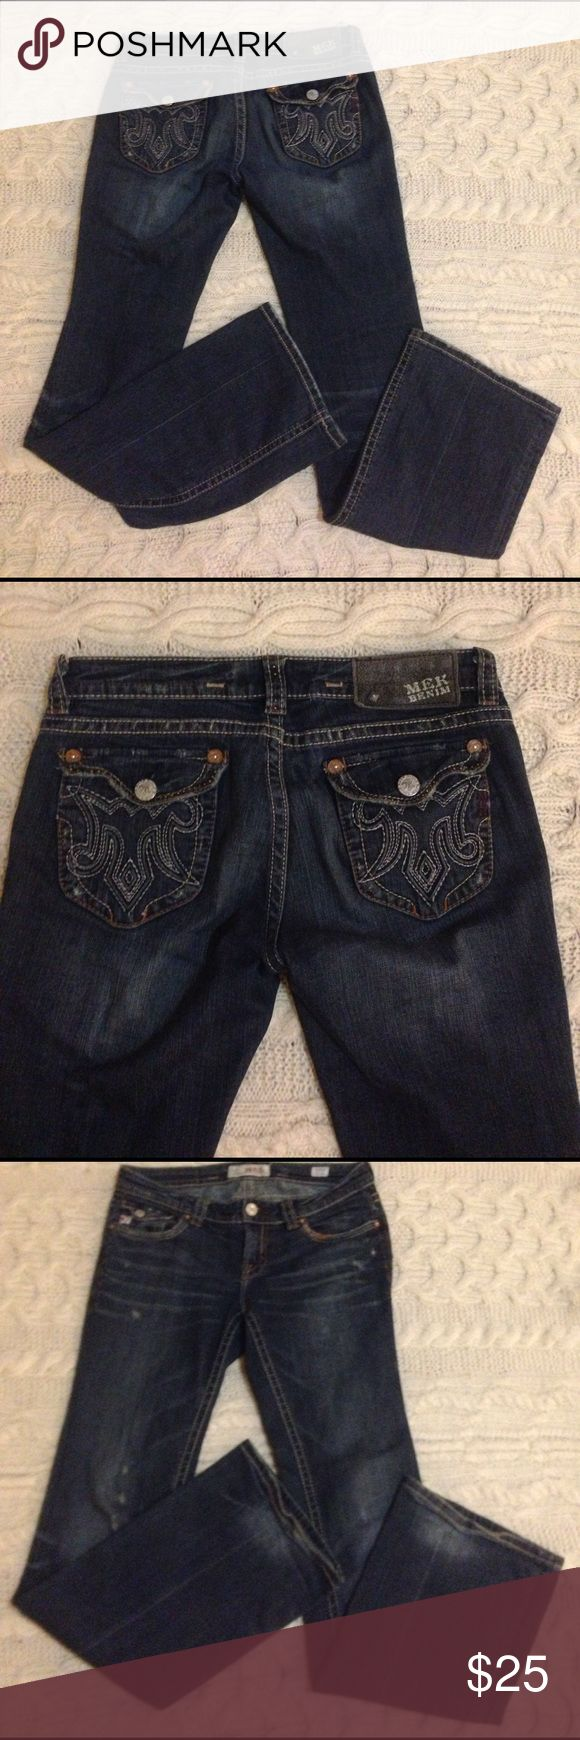 """MEK Jeans These jeans from MEK are the Durham boot cut fit. They are in great condition, just a little wear on the hemline. The inseam is 33"""" and the front rise is 8"""". MEK Jeans Boot Cut"""